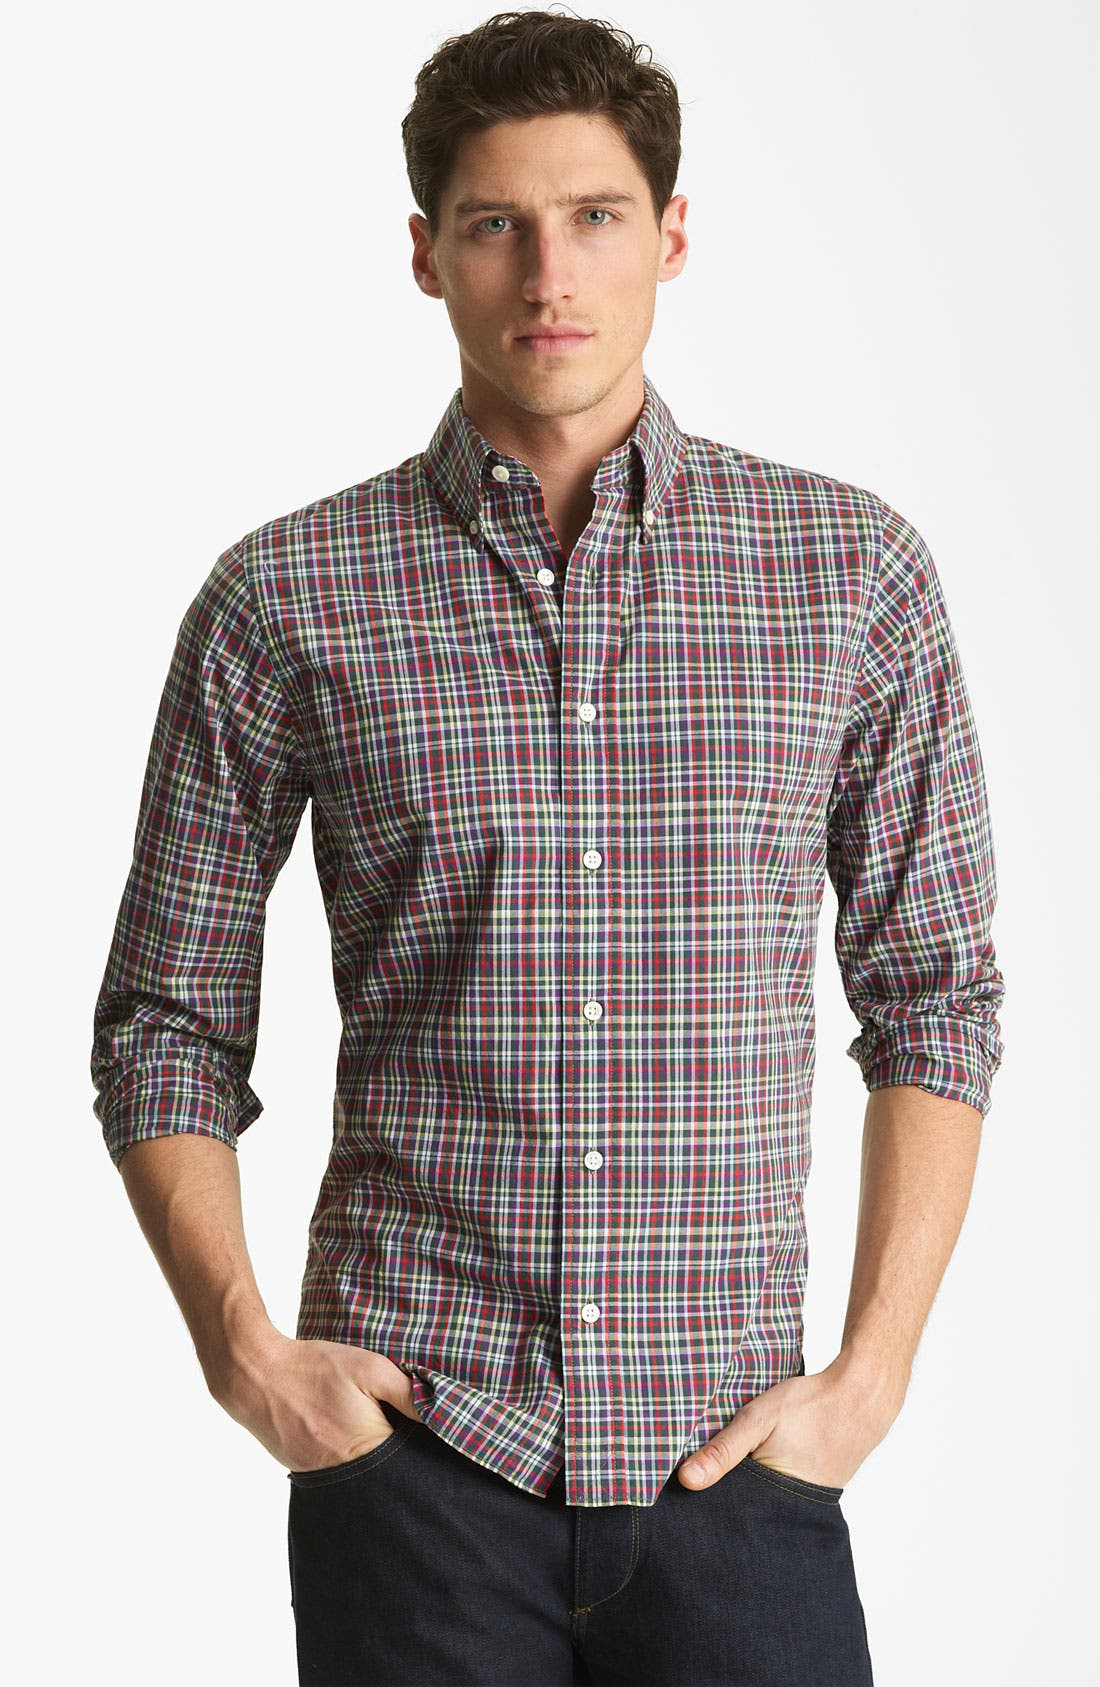 Alternate Image 1 Selected - Jack Spade 'Epen' Sport Shirt